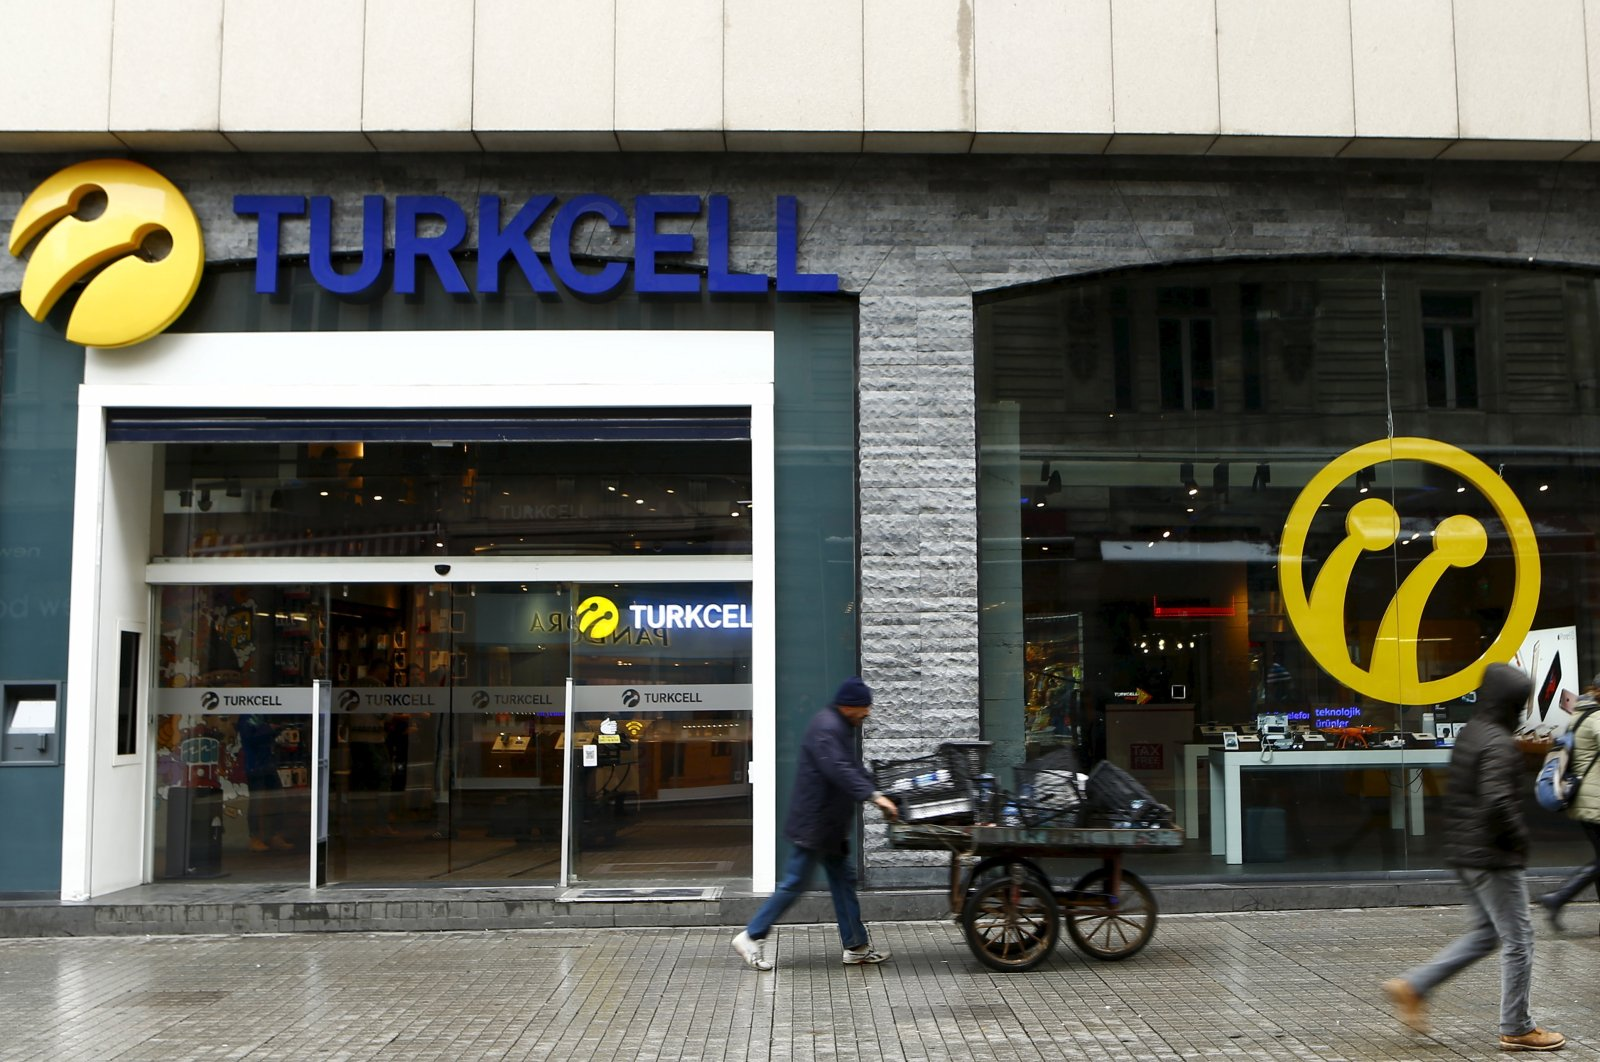 Pedestrians walk past by the main Turkcell shop in central Istanbul, Turkey, Jan. 18, 2016. (Reuters Photo)